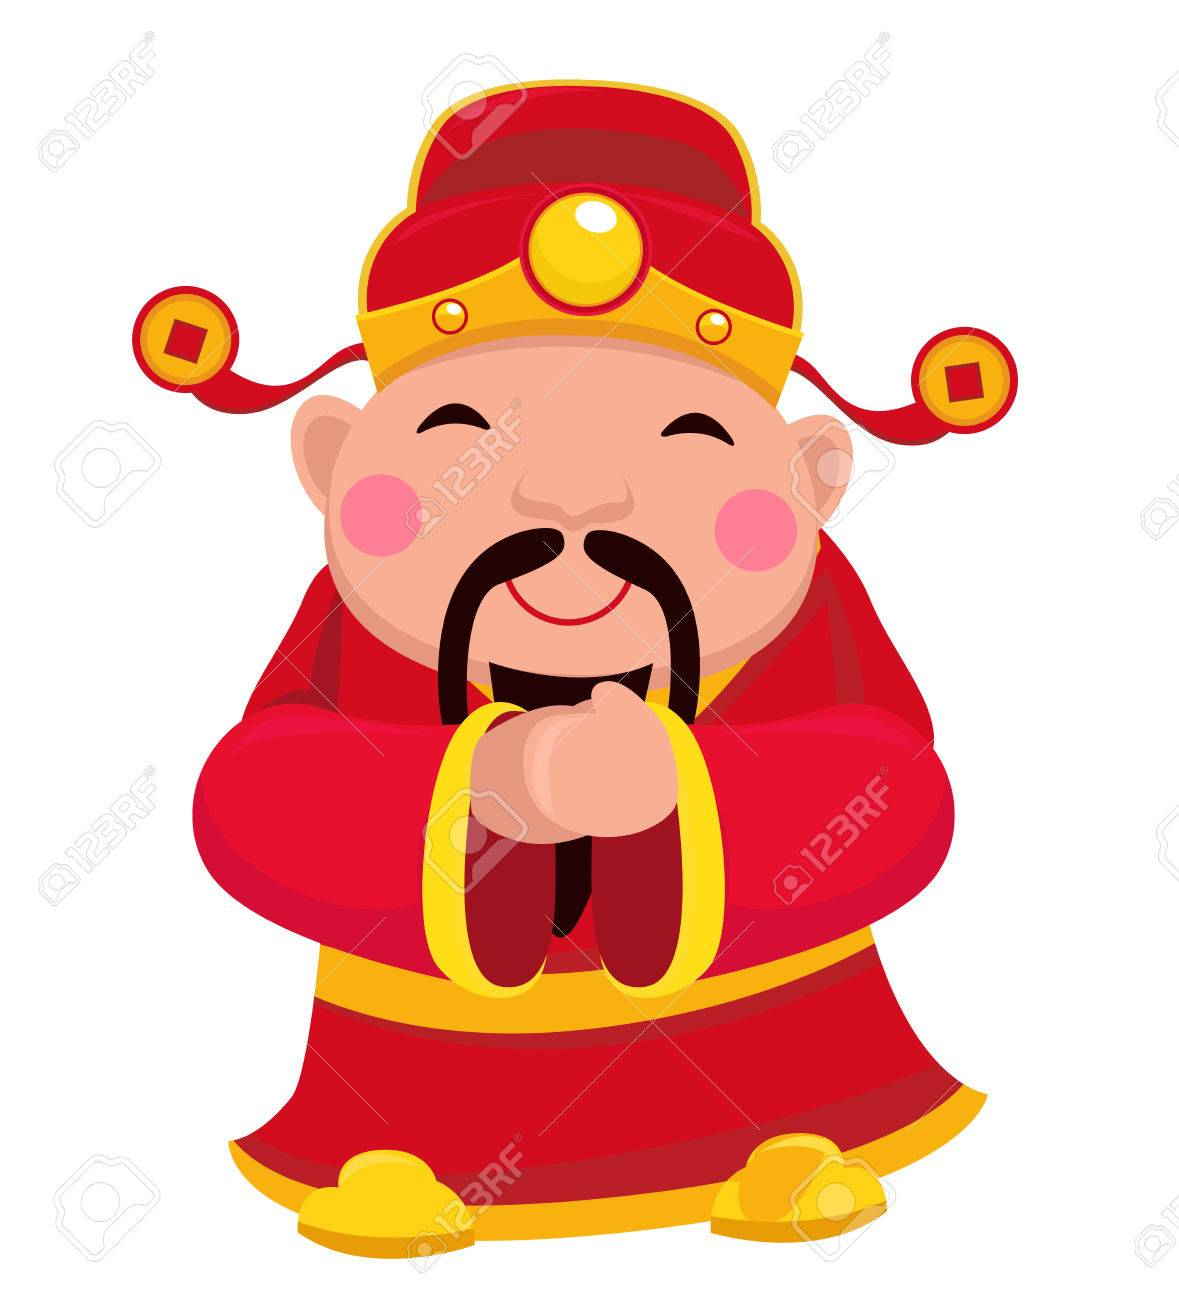 Chingod wealth new year clothing popular greeting jumping chingod wealth new year clothing popular greeting jumping ethnicity oriental chinese red vector culture symbol shadow character celebration buycottarizona Images